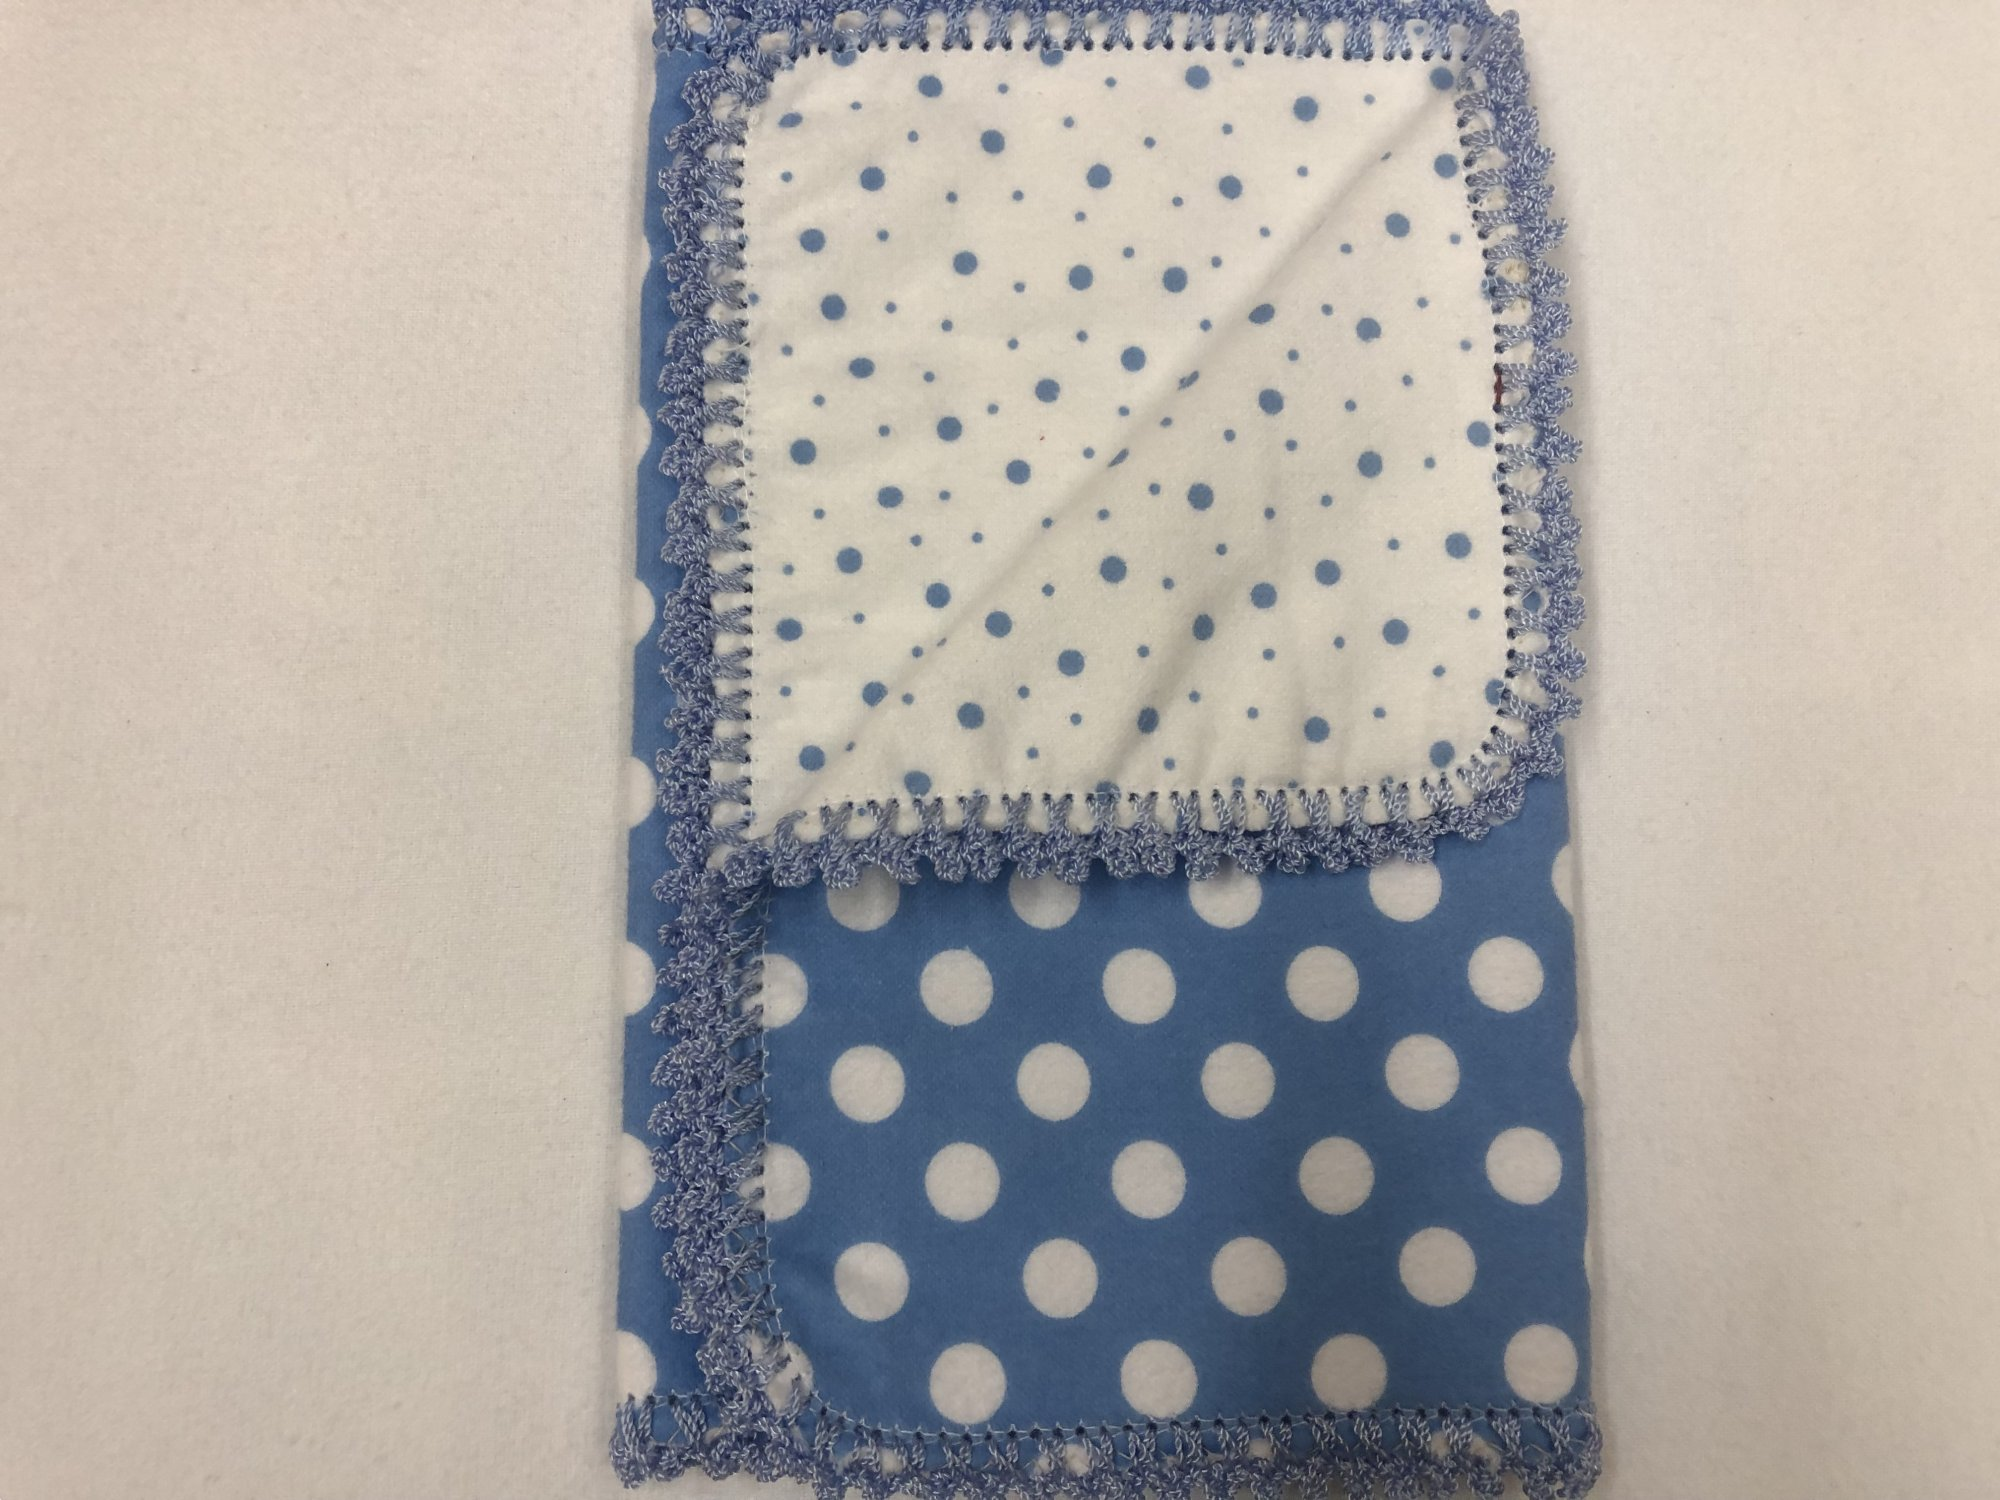 White dots on blue background/Blue dots on white background crocheted burp cloth